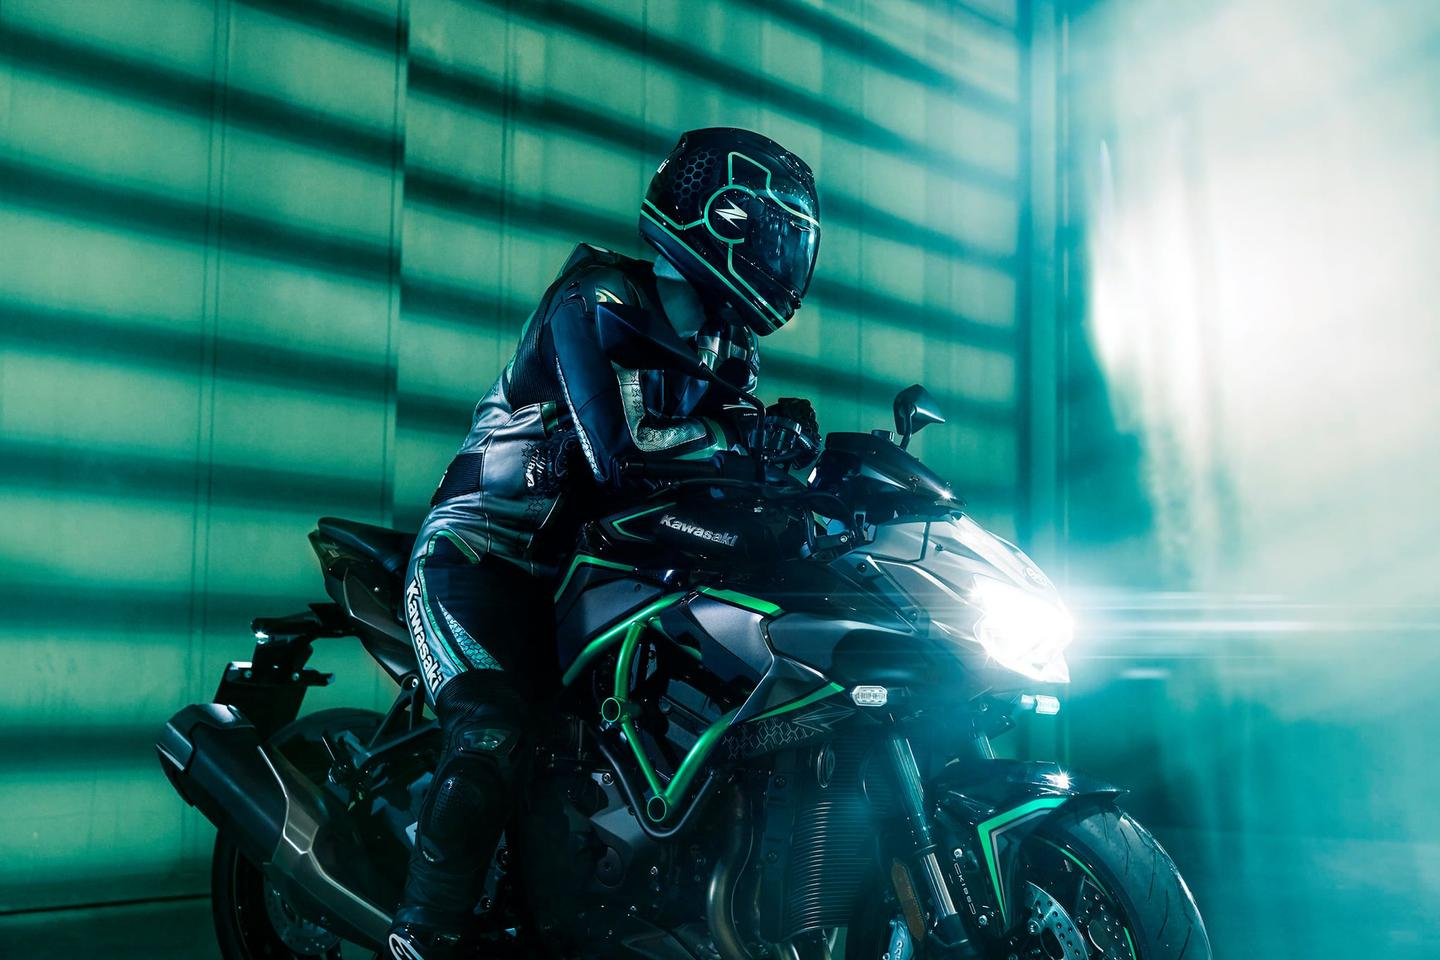 This rider is getting some physical rest after riding a supercharged Kawasaki. We can sympathize.